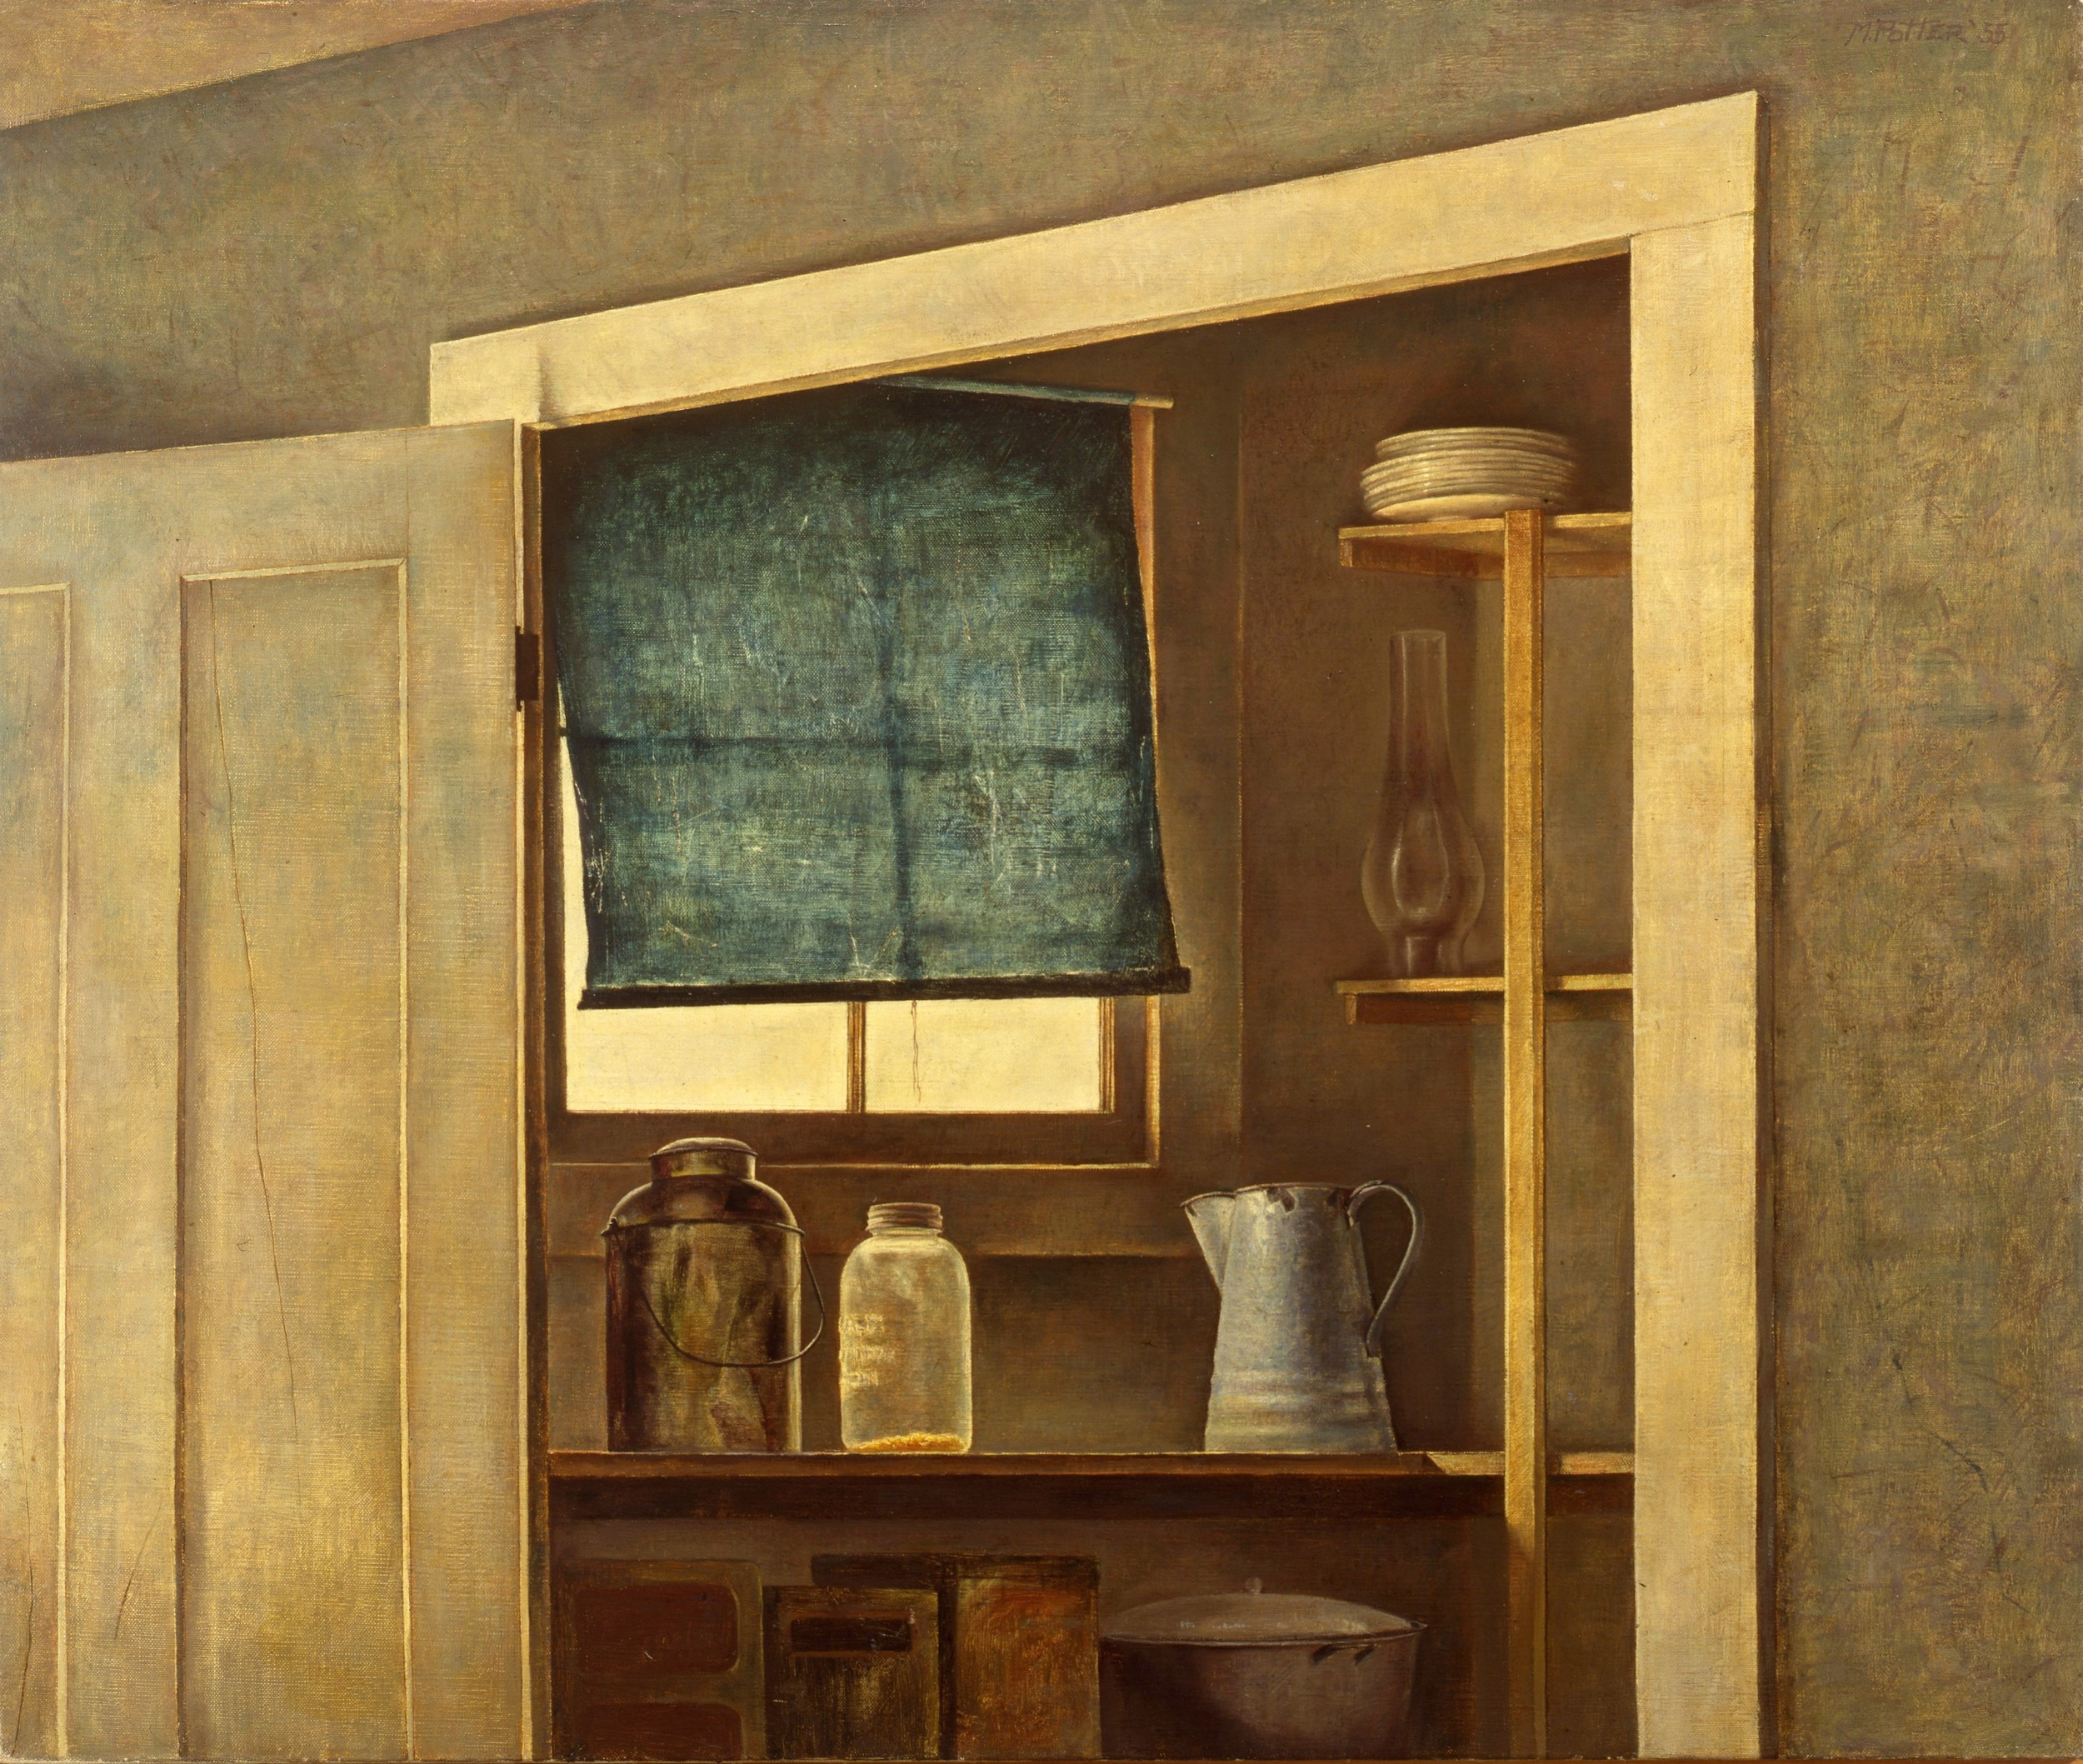 Early Still Life - Pantry.      1955, oil on canvas. 25 x 30 inches. Private Collection.